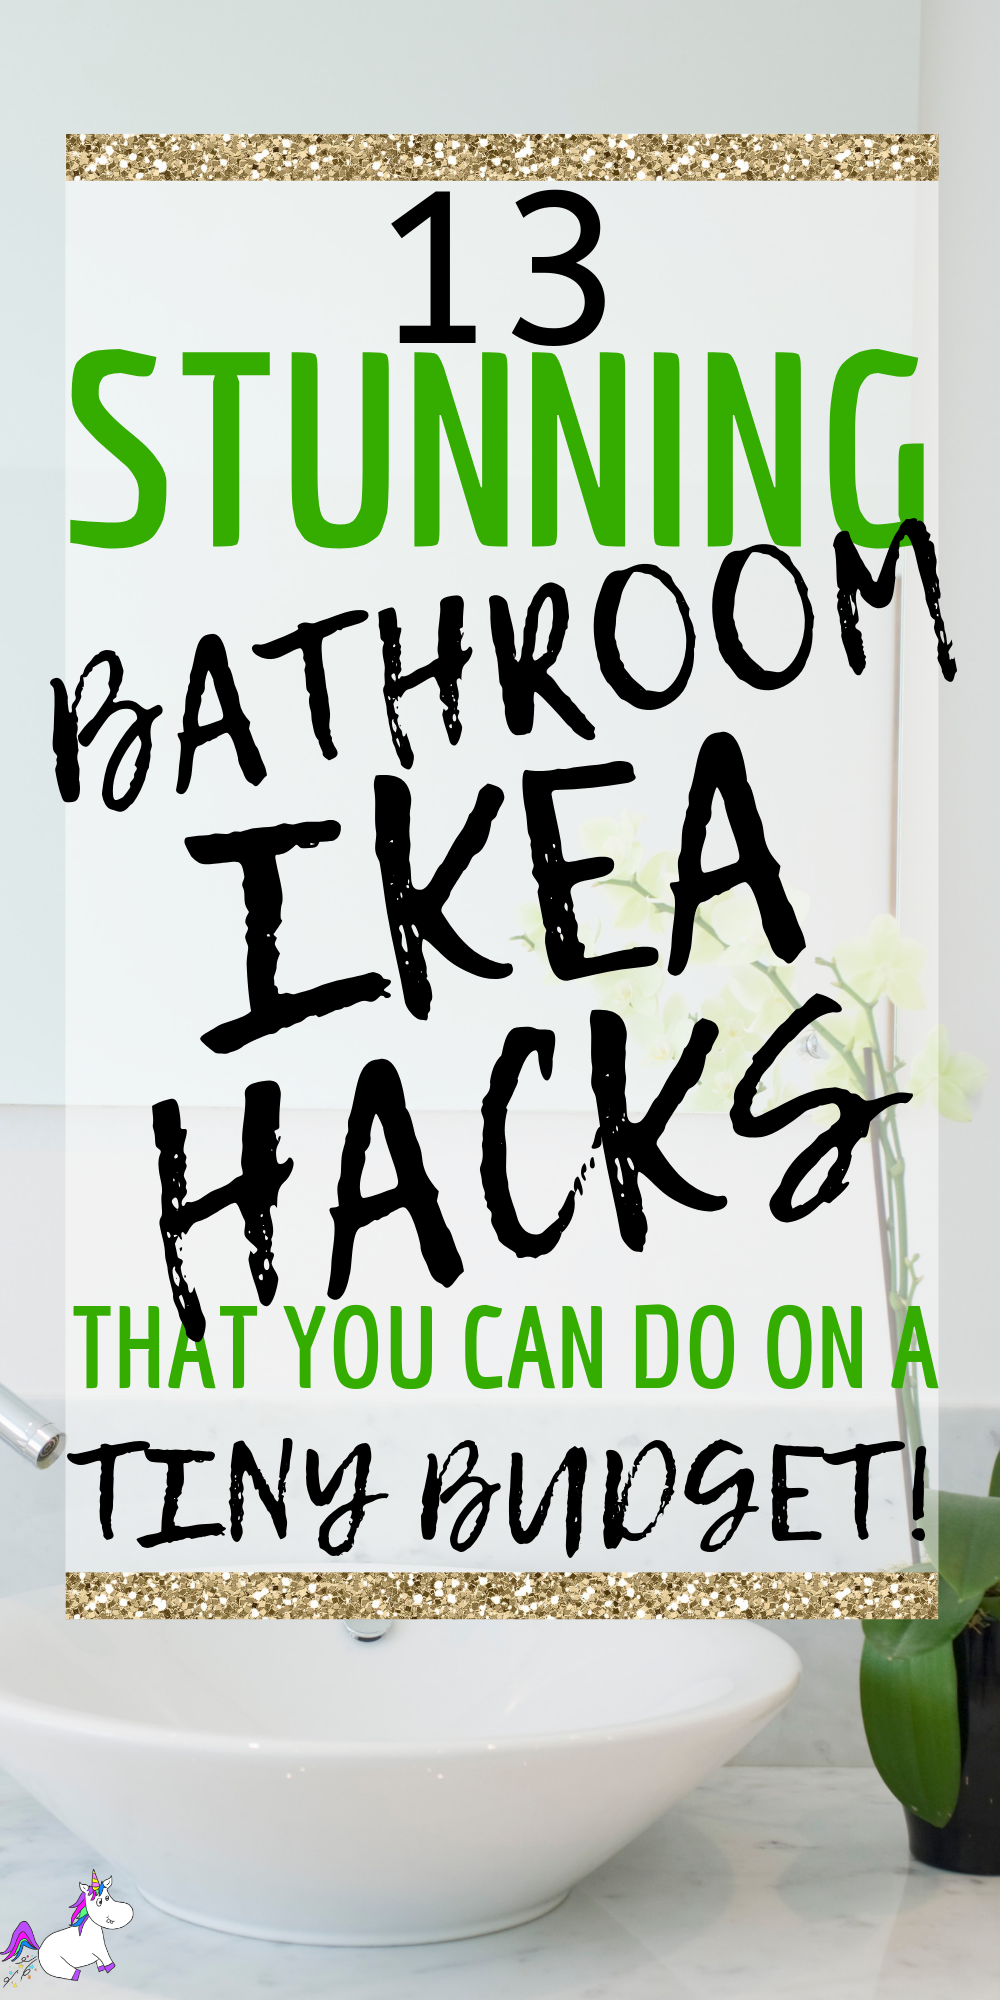 13 Stunning Bathroom Ikea Hacks You Can Do If You Love DIY Home Decor on A Budget! These Ikea Hack Ideas Will Sort and Organize Your Bathroom! #ikeahack #ikeahackers #ikeahacksbathroom #ikeahacksstorage #bathroomdesign #bathroomdecor #homedecoronabudget